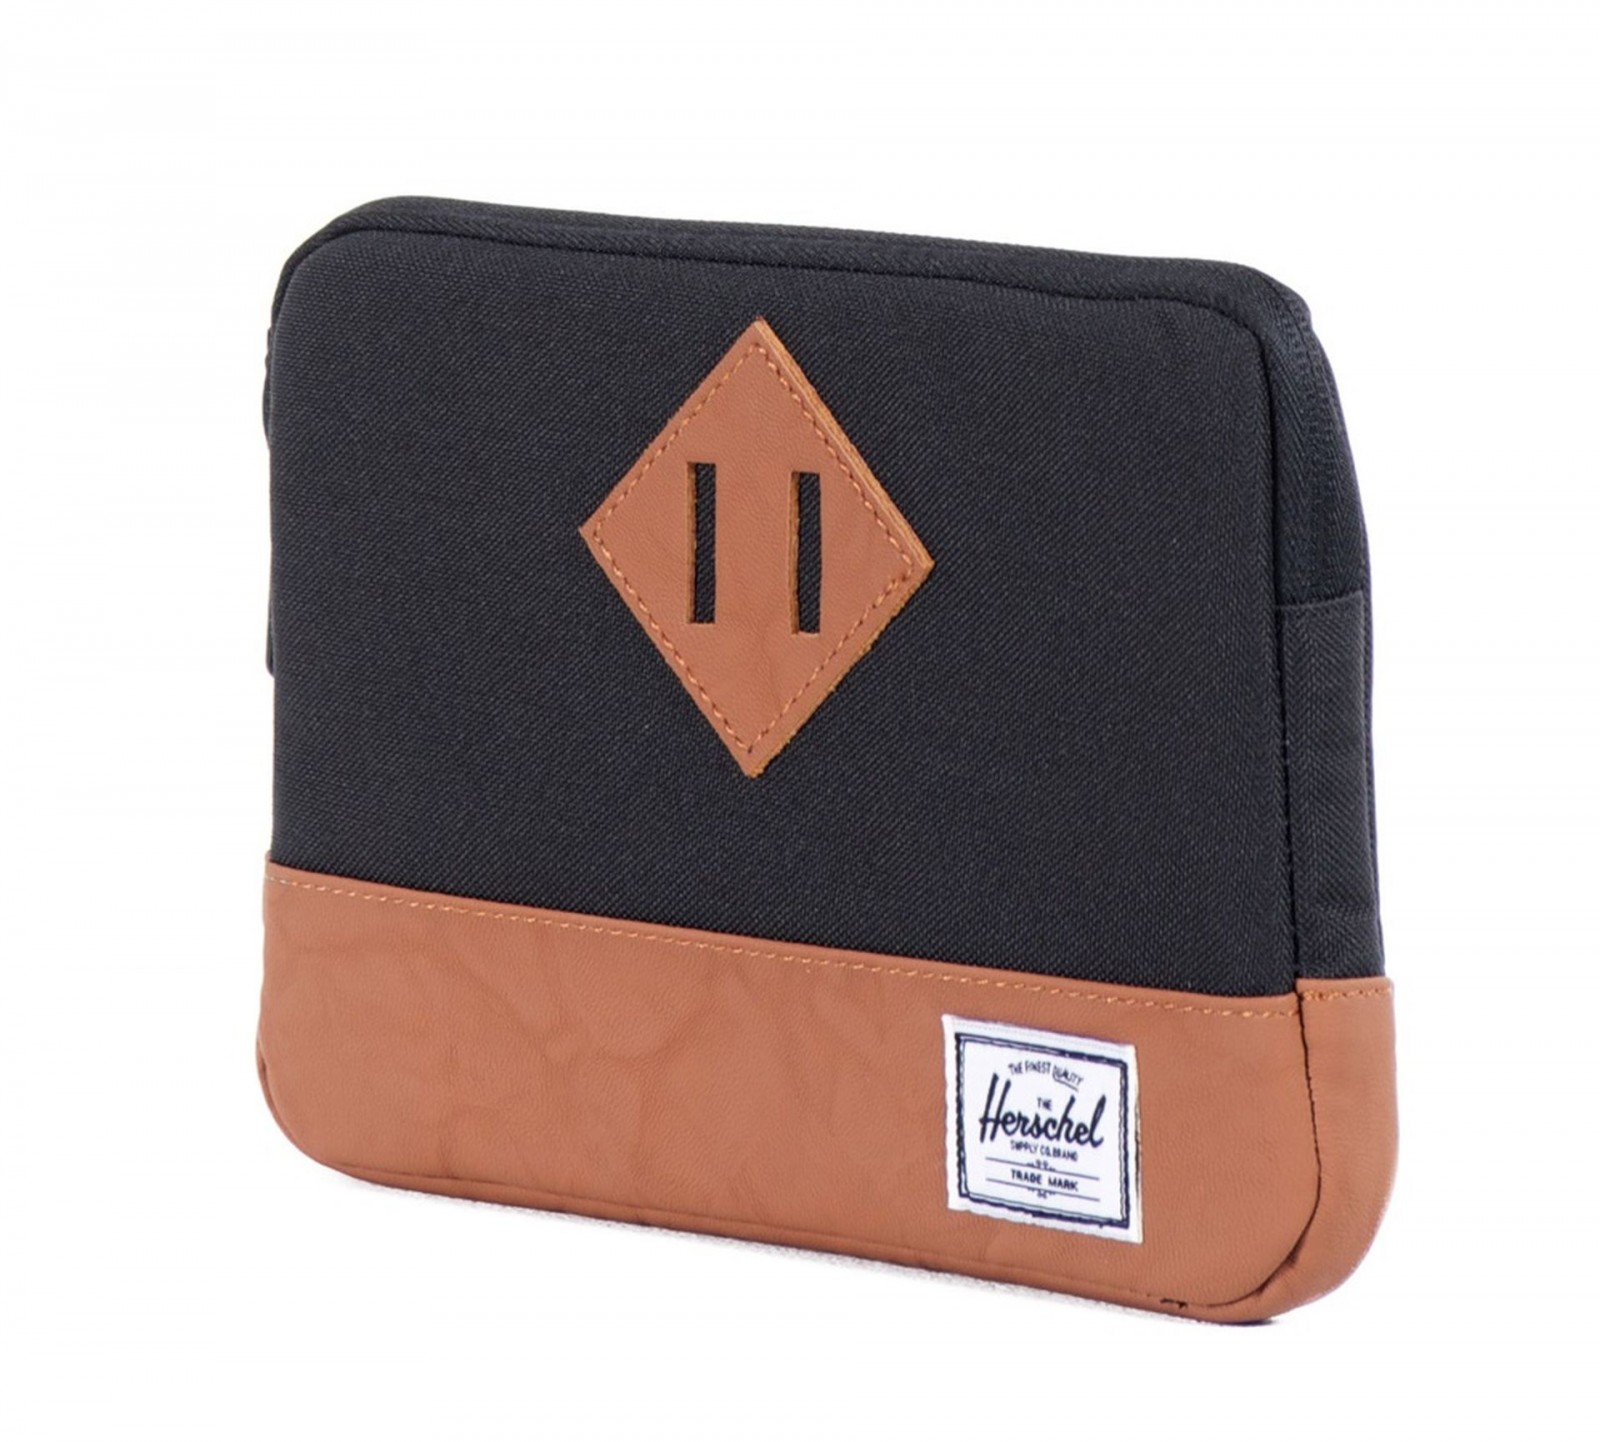 Herschel Heritage Sleeve for iPad Mini Black